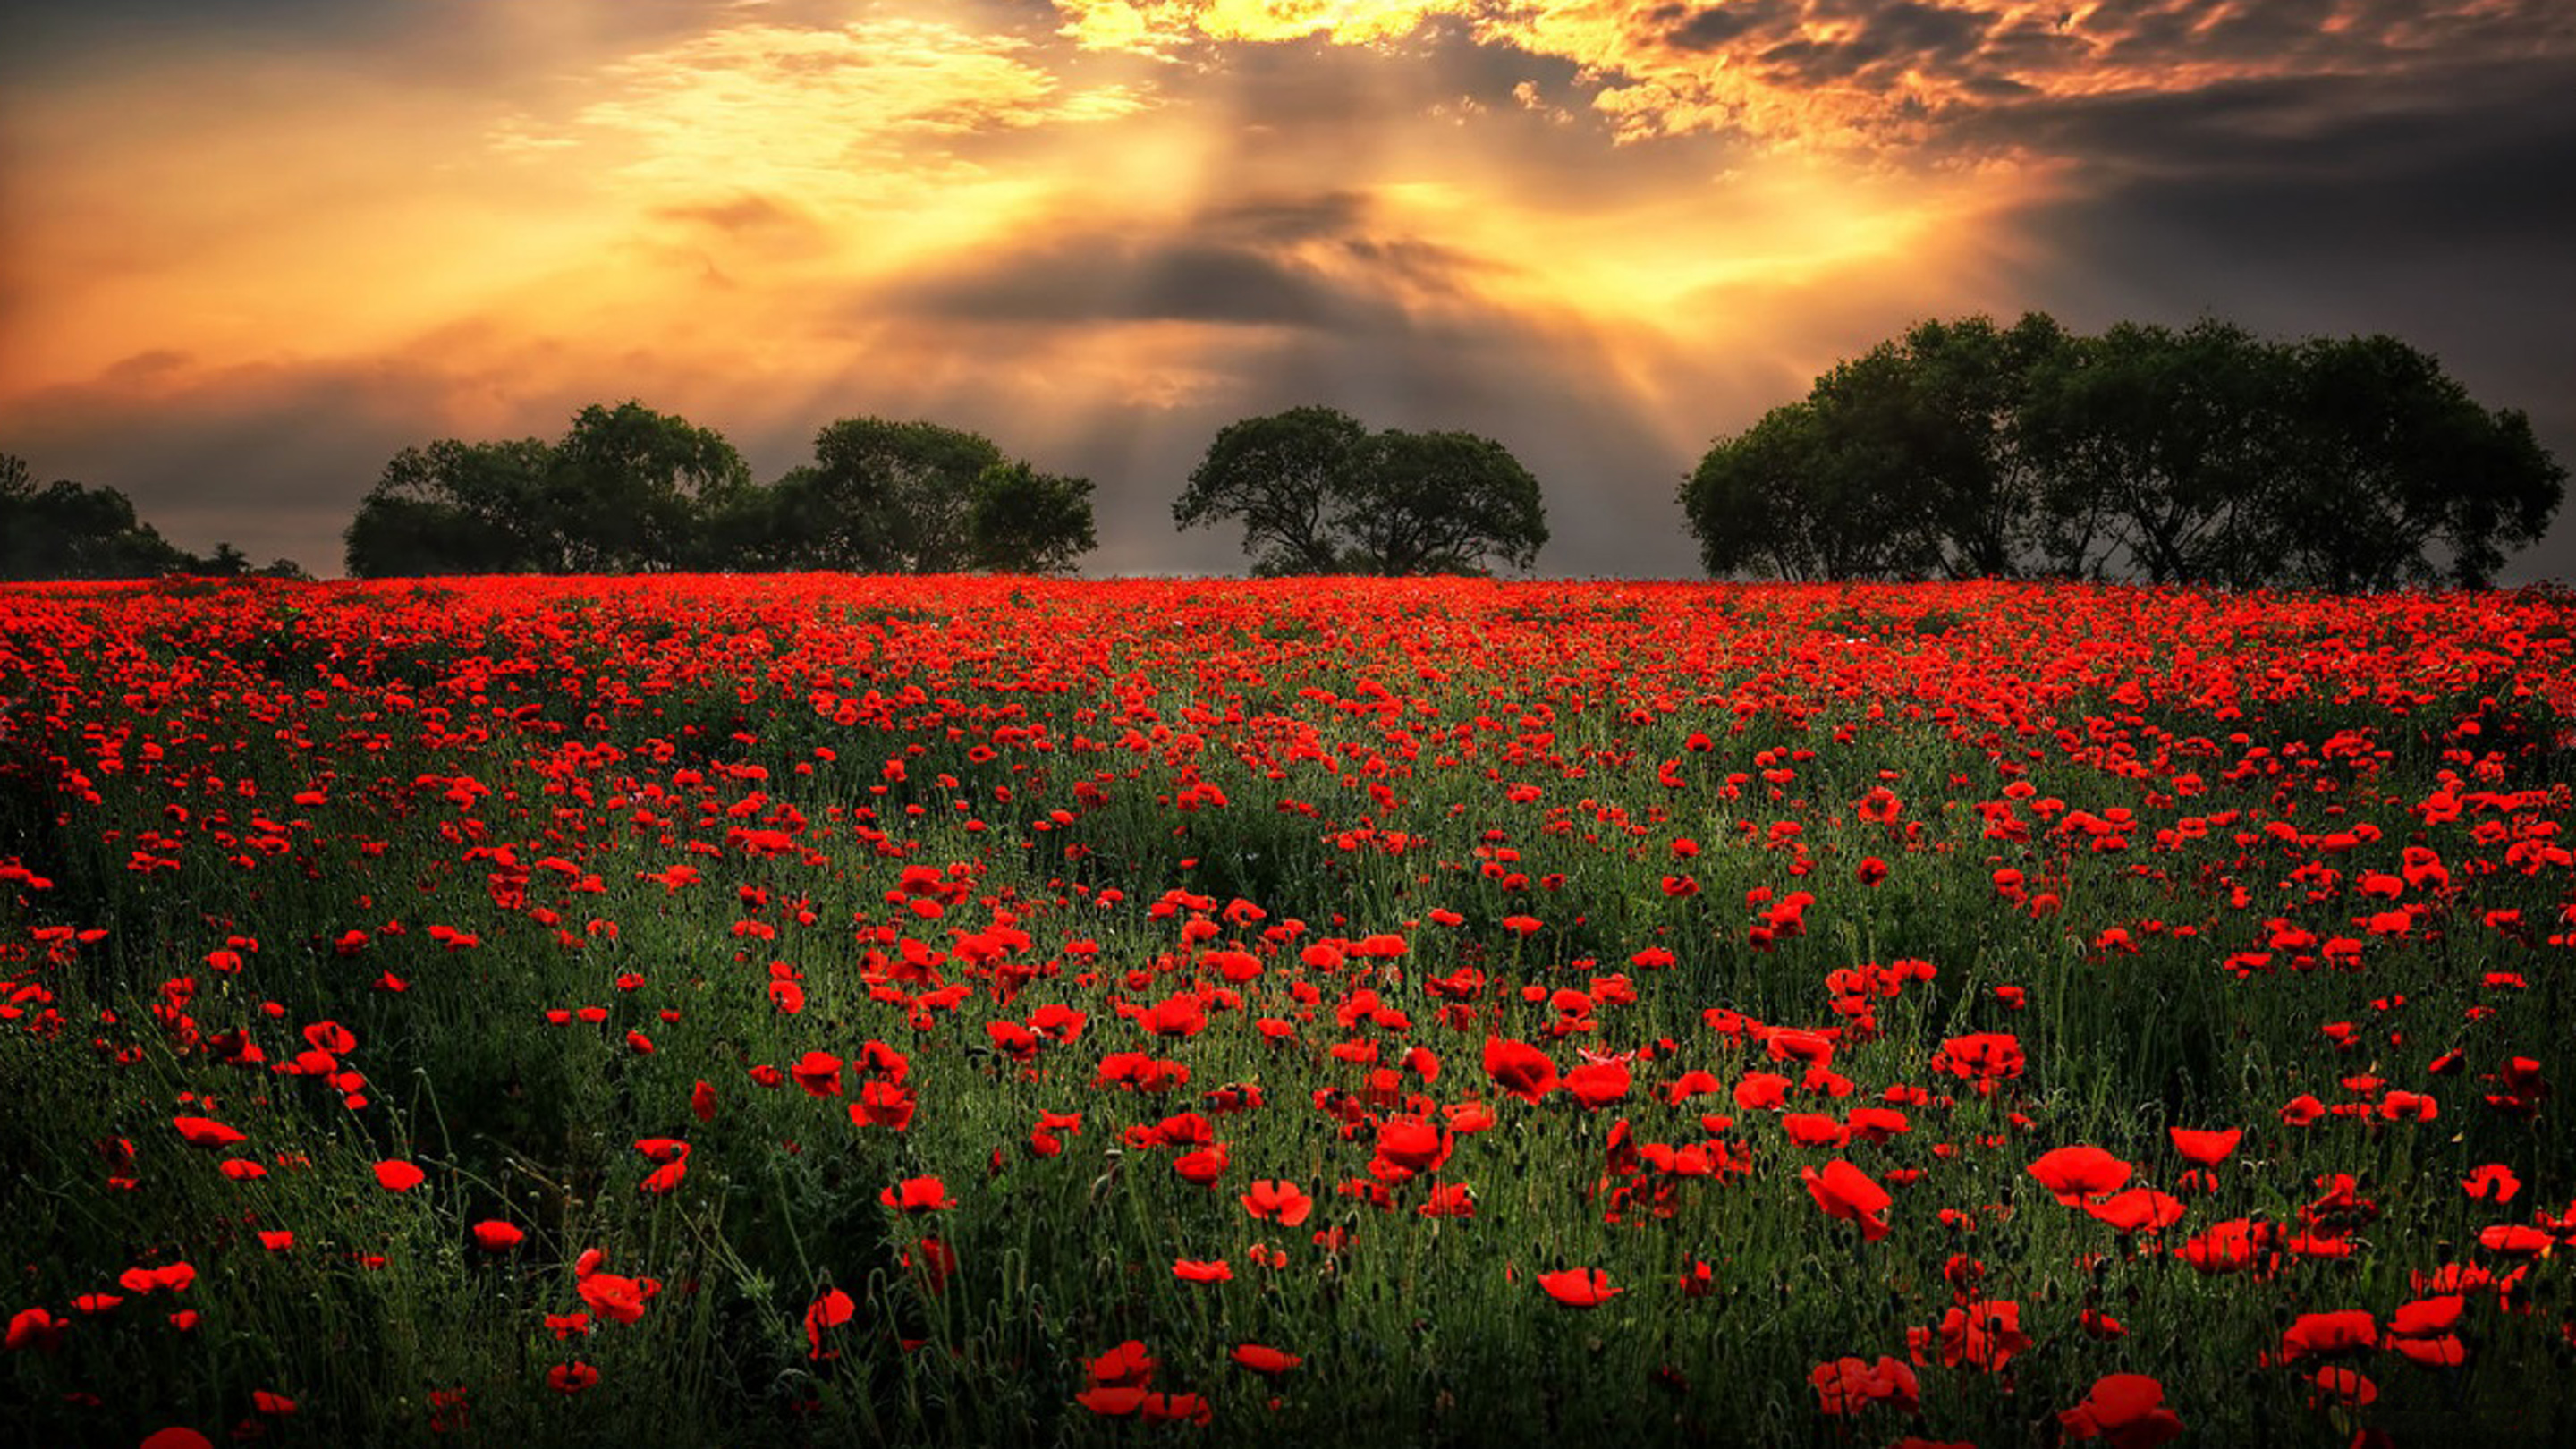 Poppy Wallpaper For Iphone Field With Red Poppies Morning Sunlight Through Dark